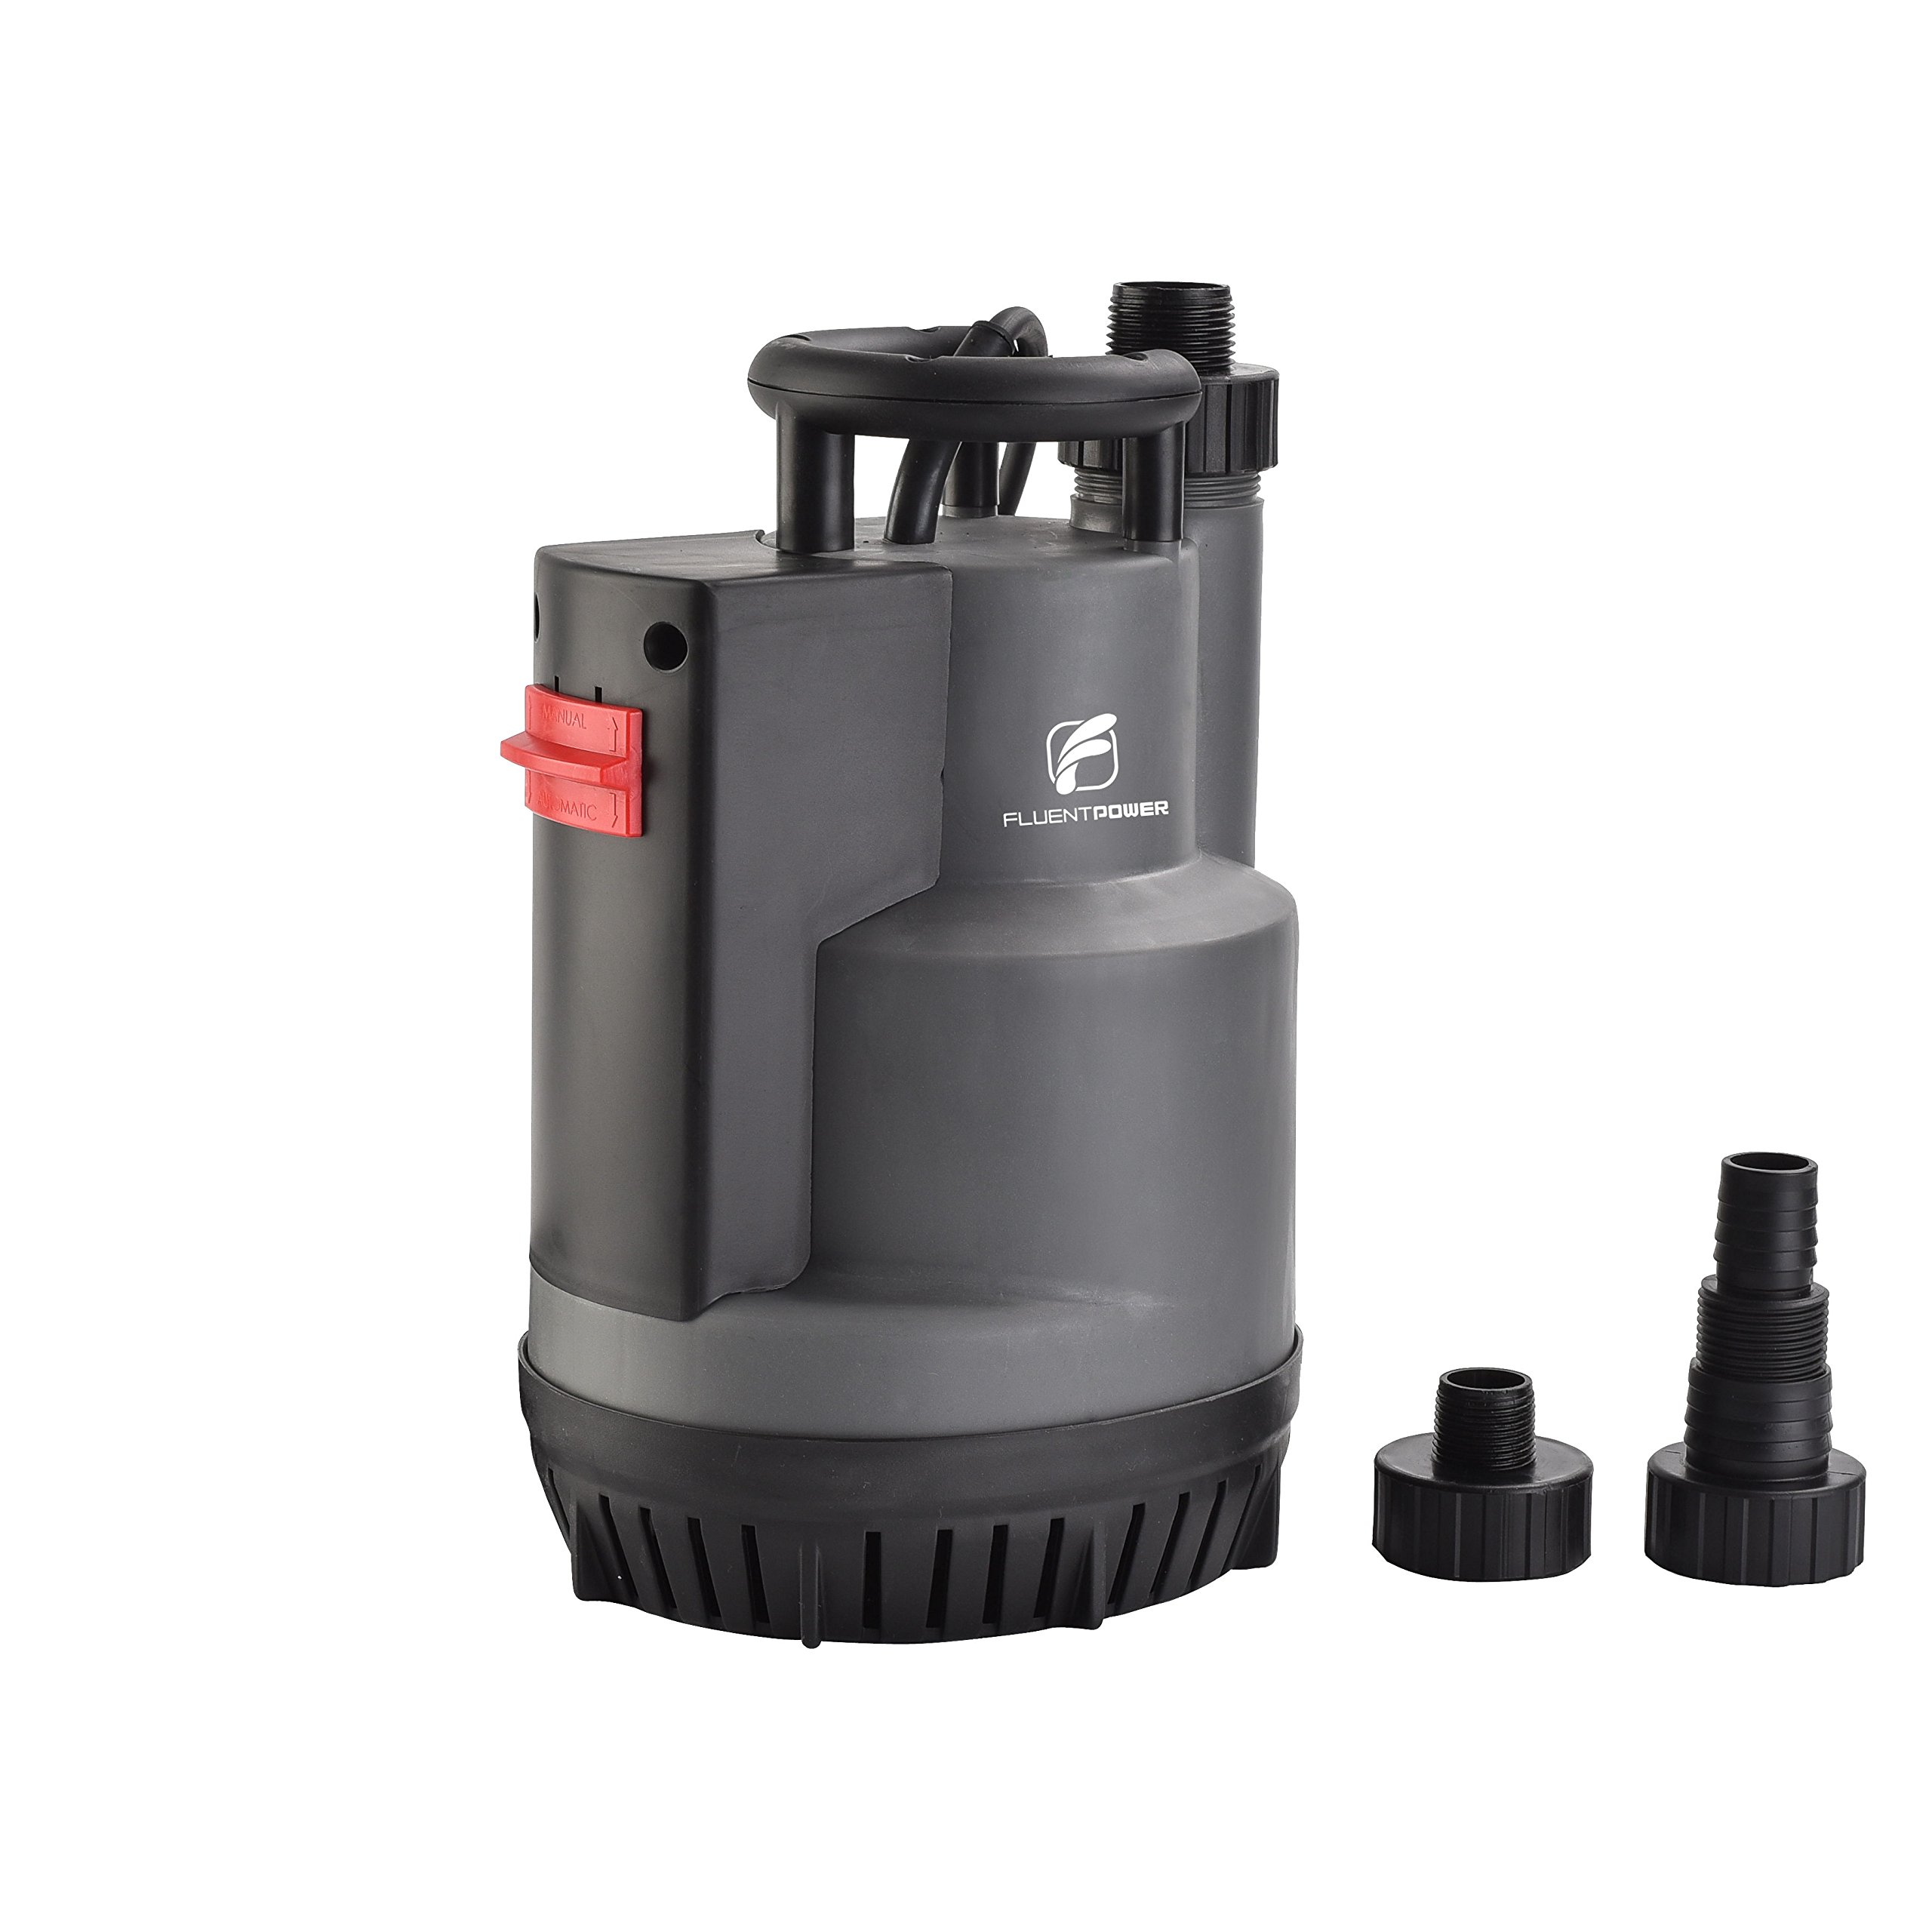 FLUENT POWER Submersible Pump, Automatic ON/OFF, Electric Submersible Water Removal Pump, Prevent Dry Running, Max Flow 2200 GPH, with Fittings Size NPT 3/4'', 1'' and 1.5'' for Hose Connection(1/2 HP)